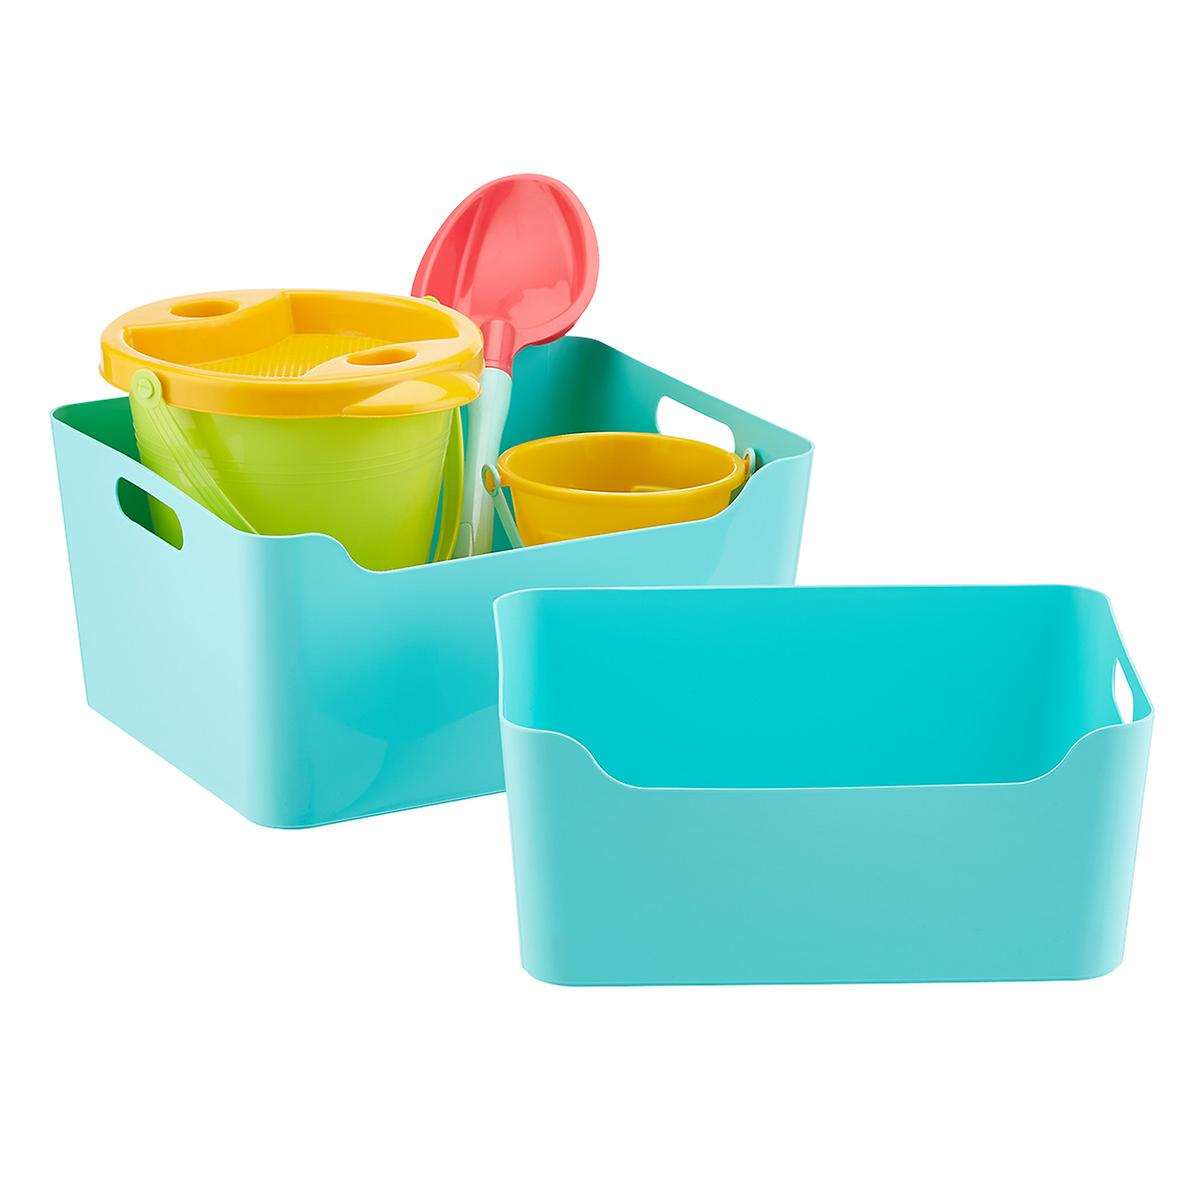 Aquamarine Plastic Storage Bins with Handles